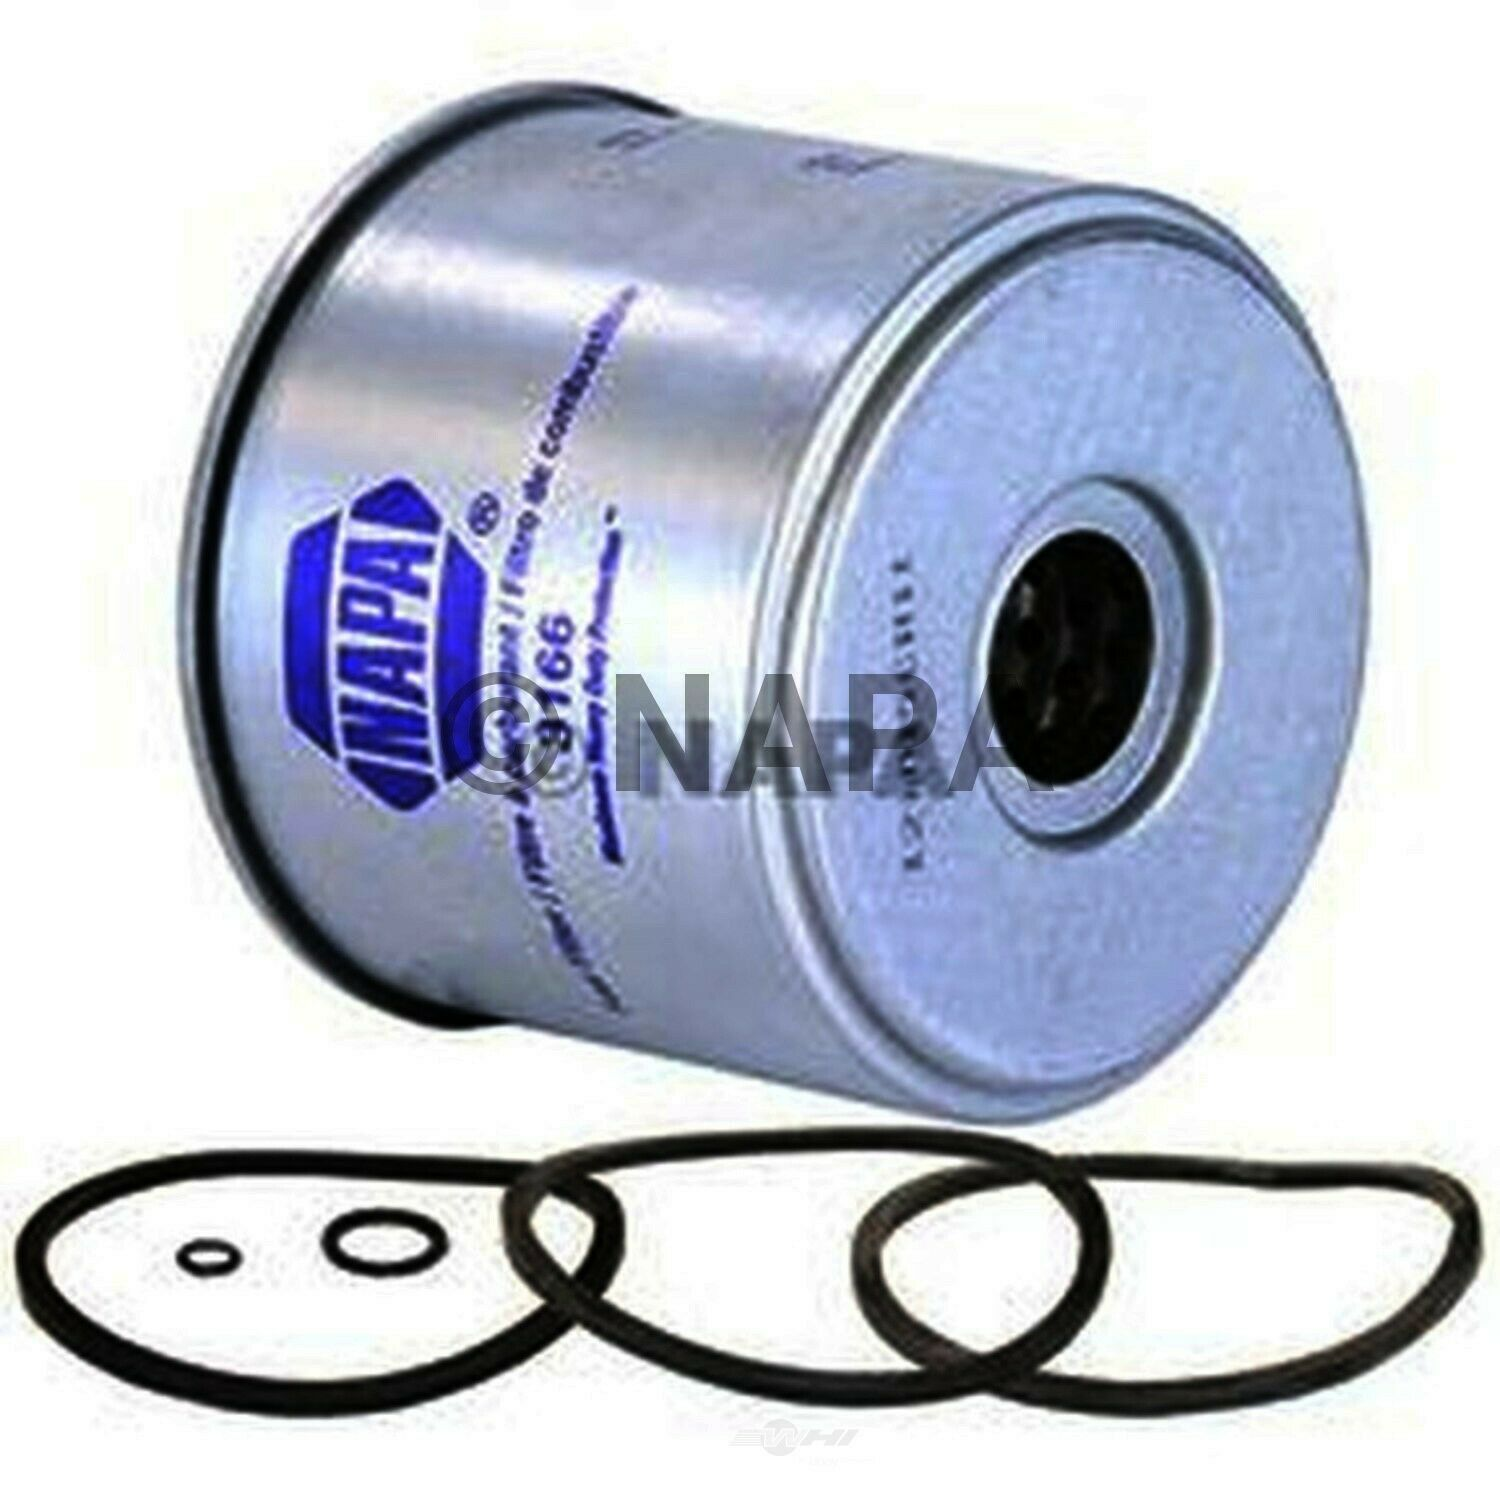 Fuel Filter Napa 3166 1011 Picclick 2007 Chysler Pt Cruiser 1 Of See More